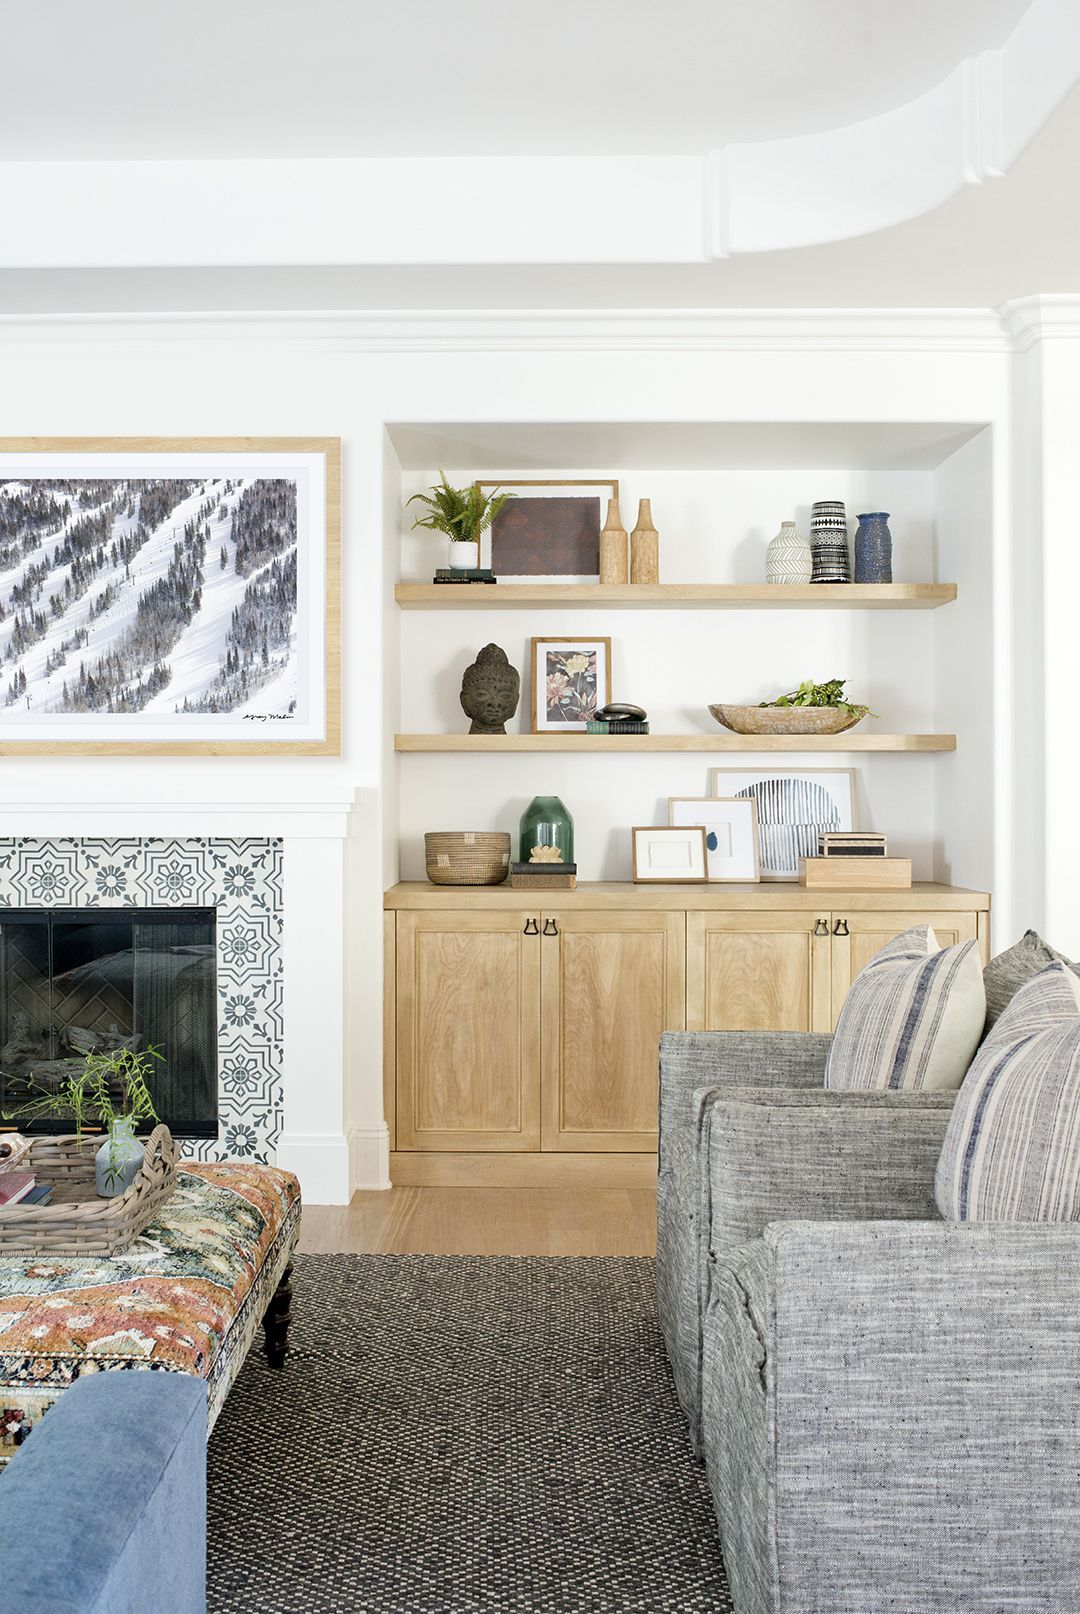 design direction décor trends to look out for in 2018